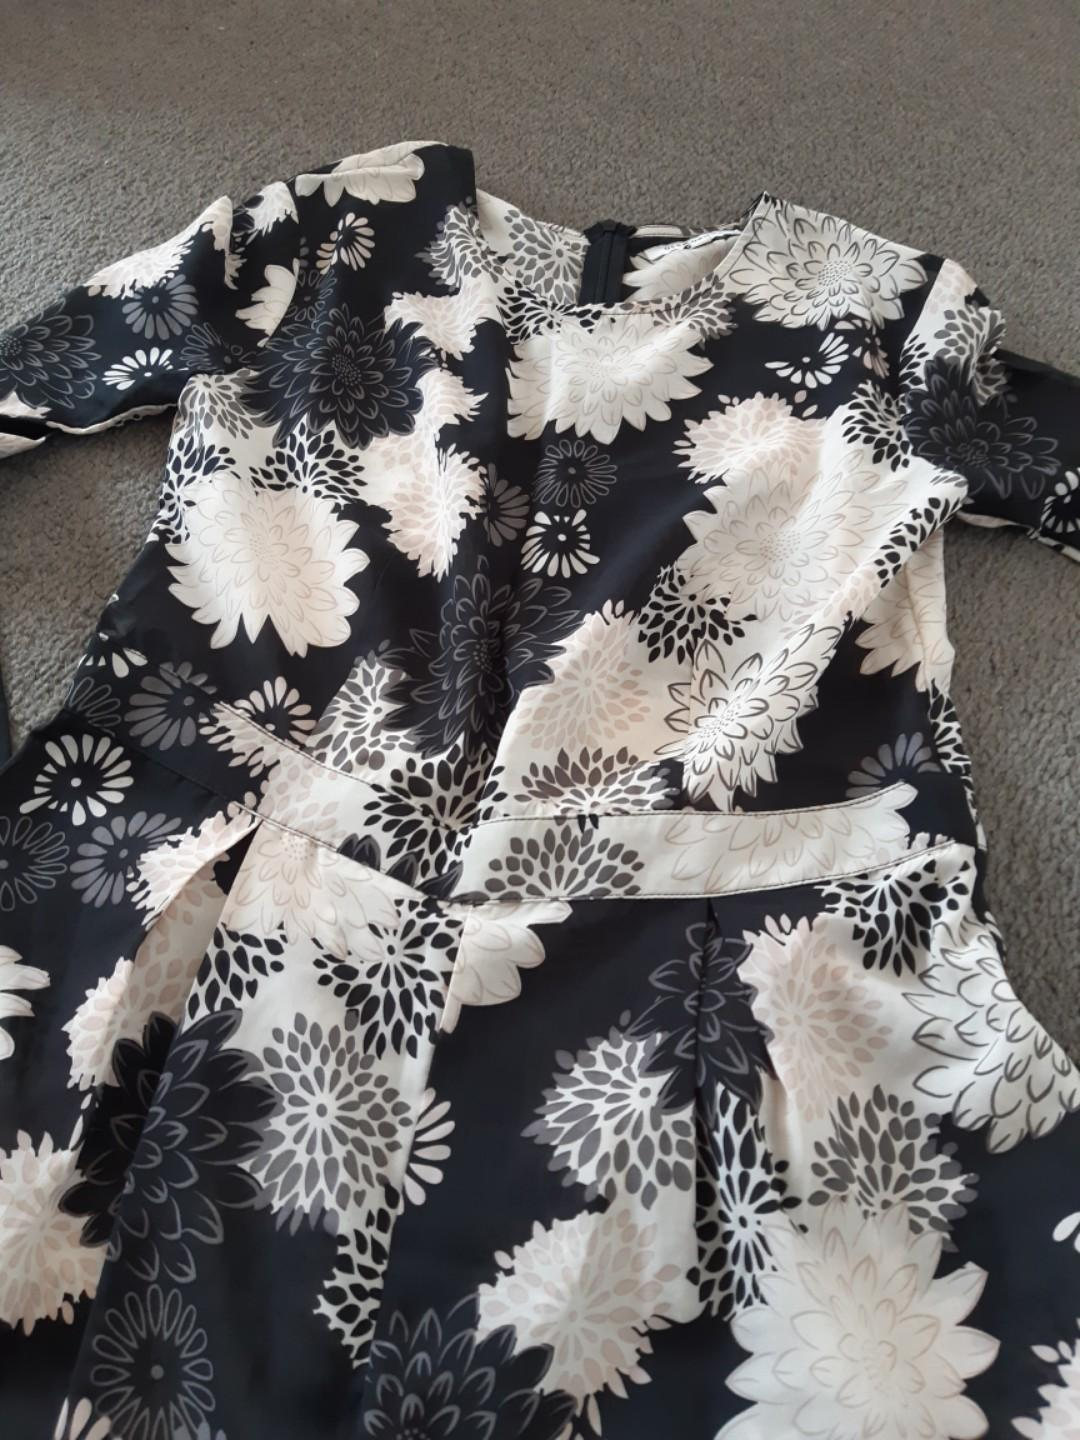 150+ Women's Clothing and Accessories (Send your offer)